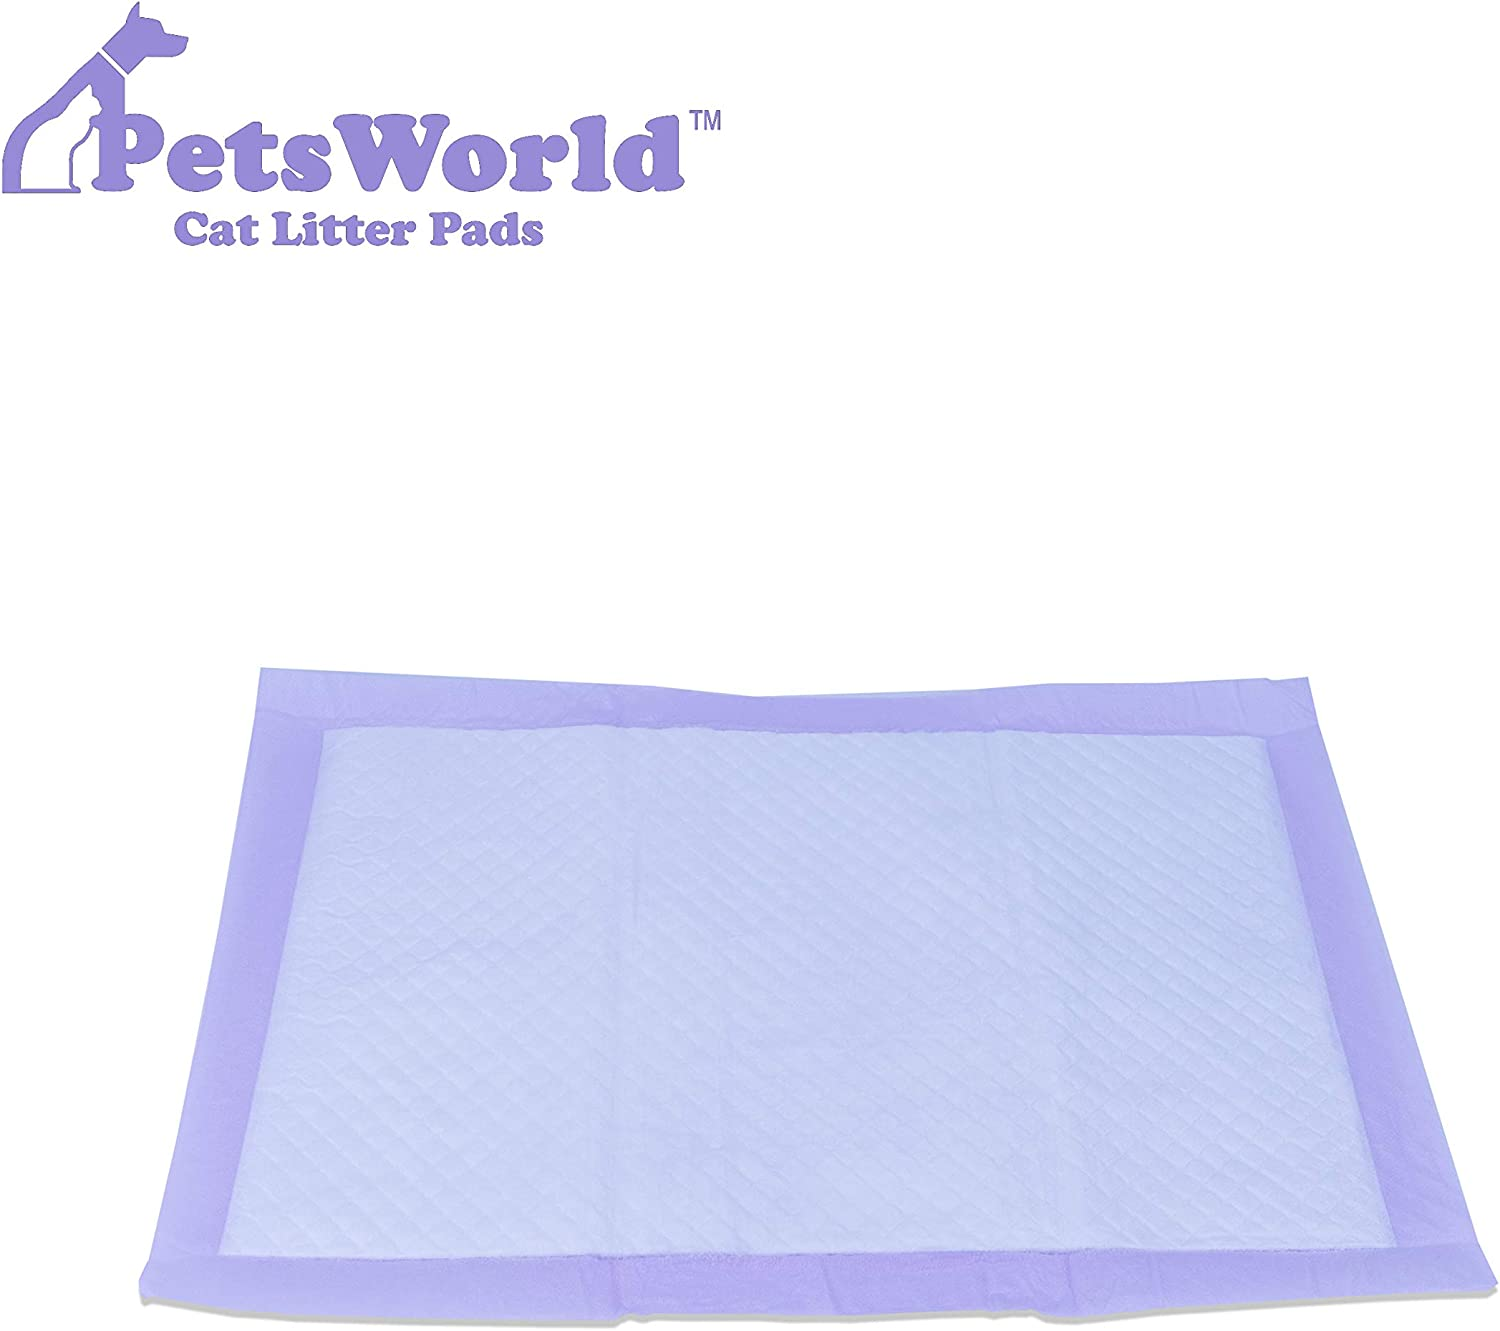 PETSWORLD Cat Pad Refills for Tidy Cats Breeze Litter System for Cat Litter Box Totally Redesigned